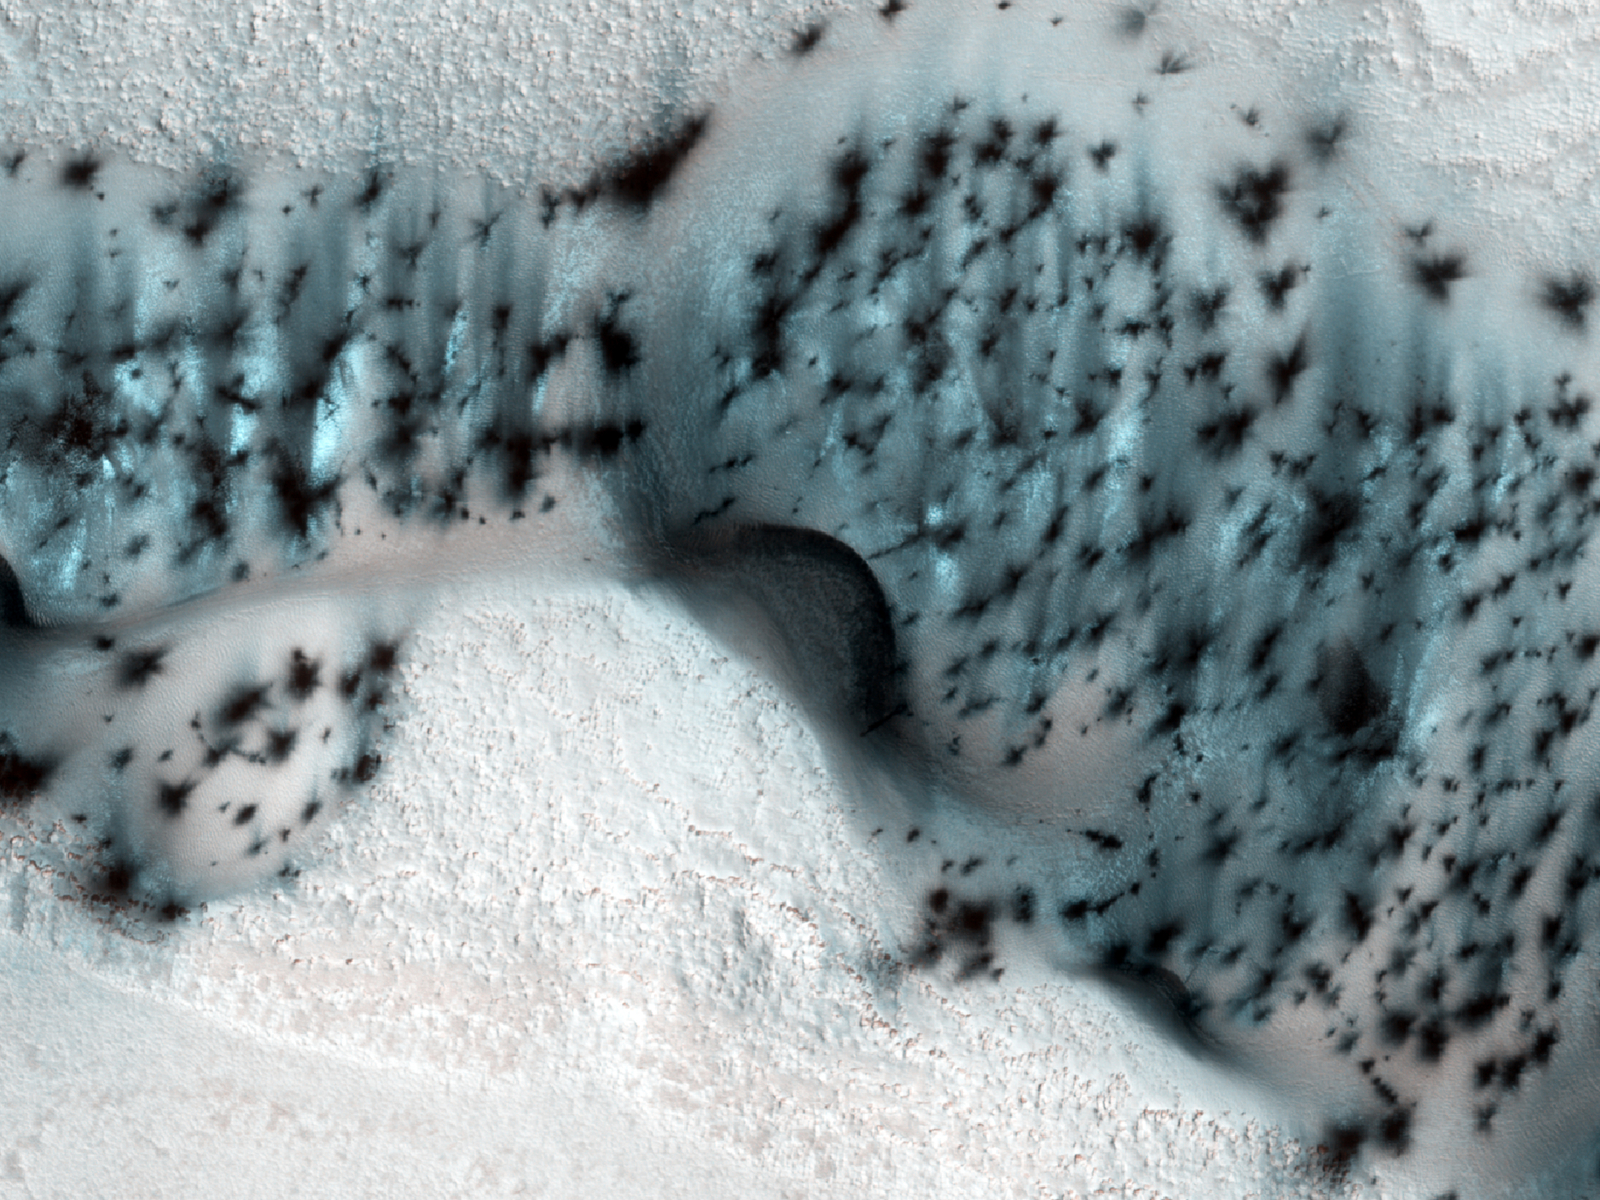 These barchan (crescent-shaped) sand dunes are found within the North Polar erg of Mars.